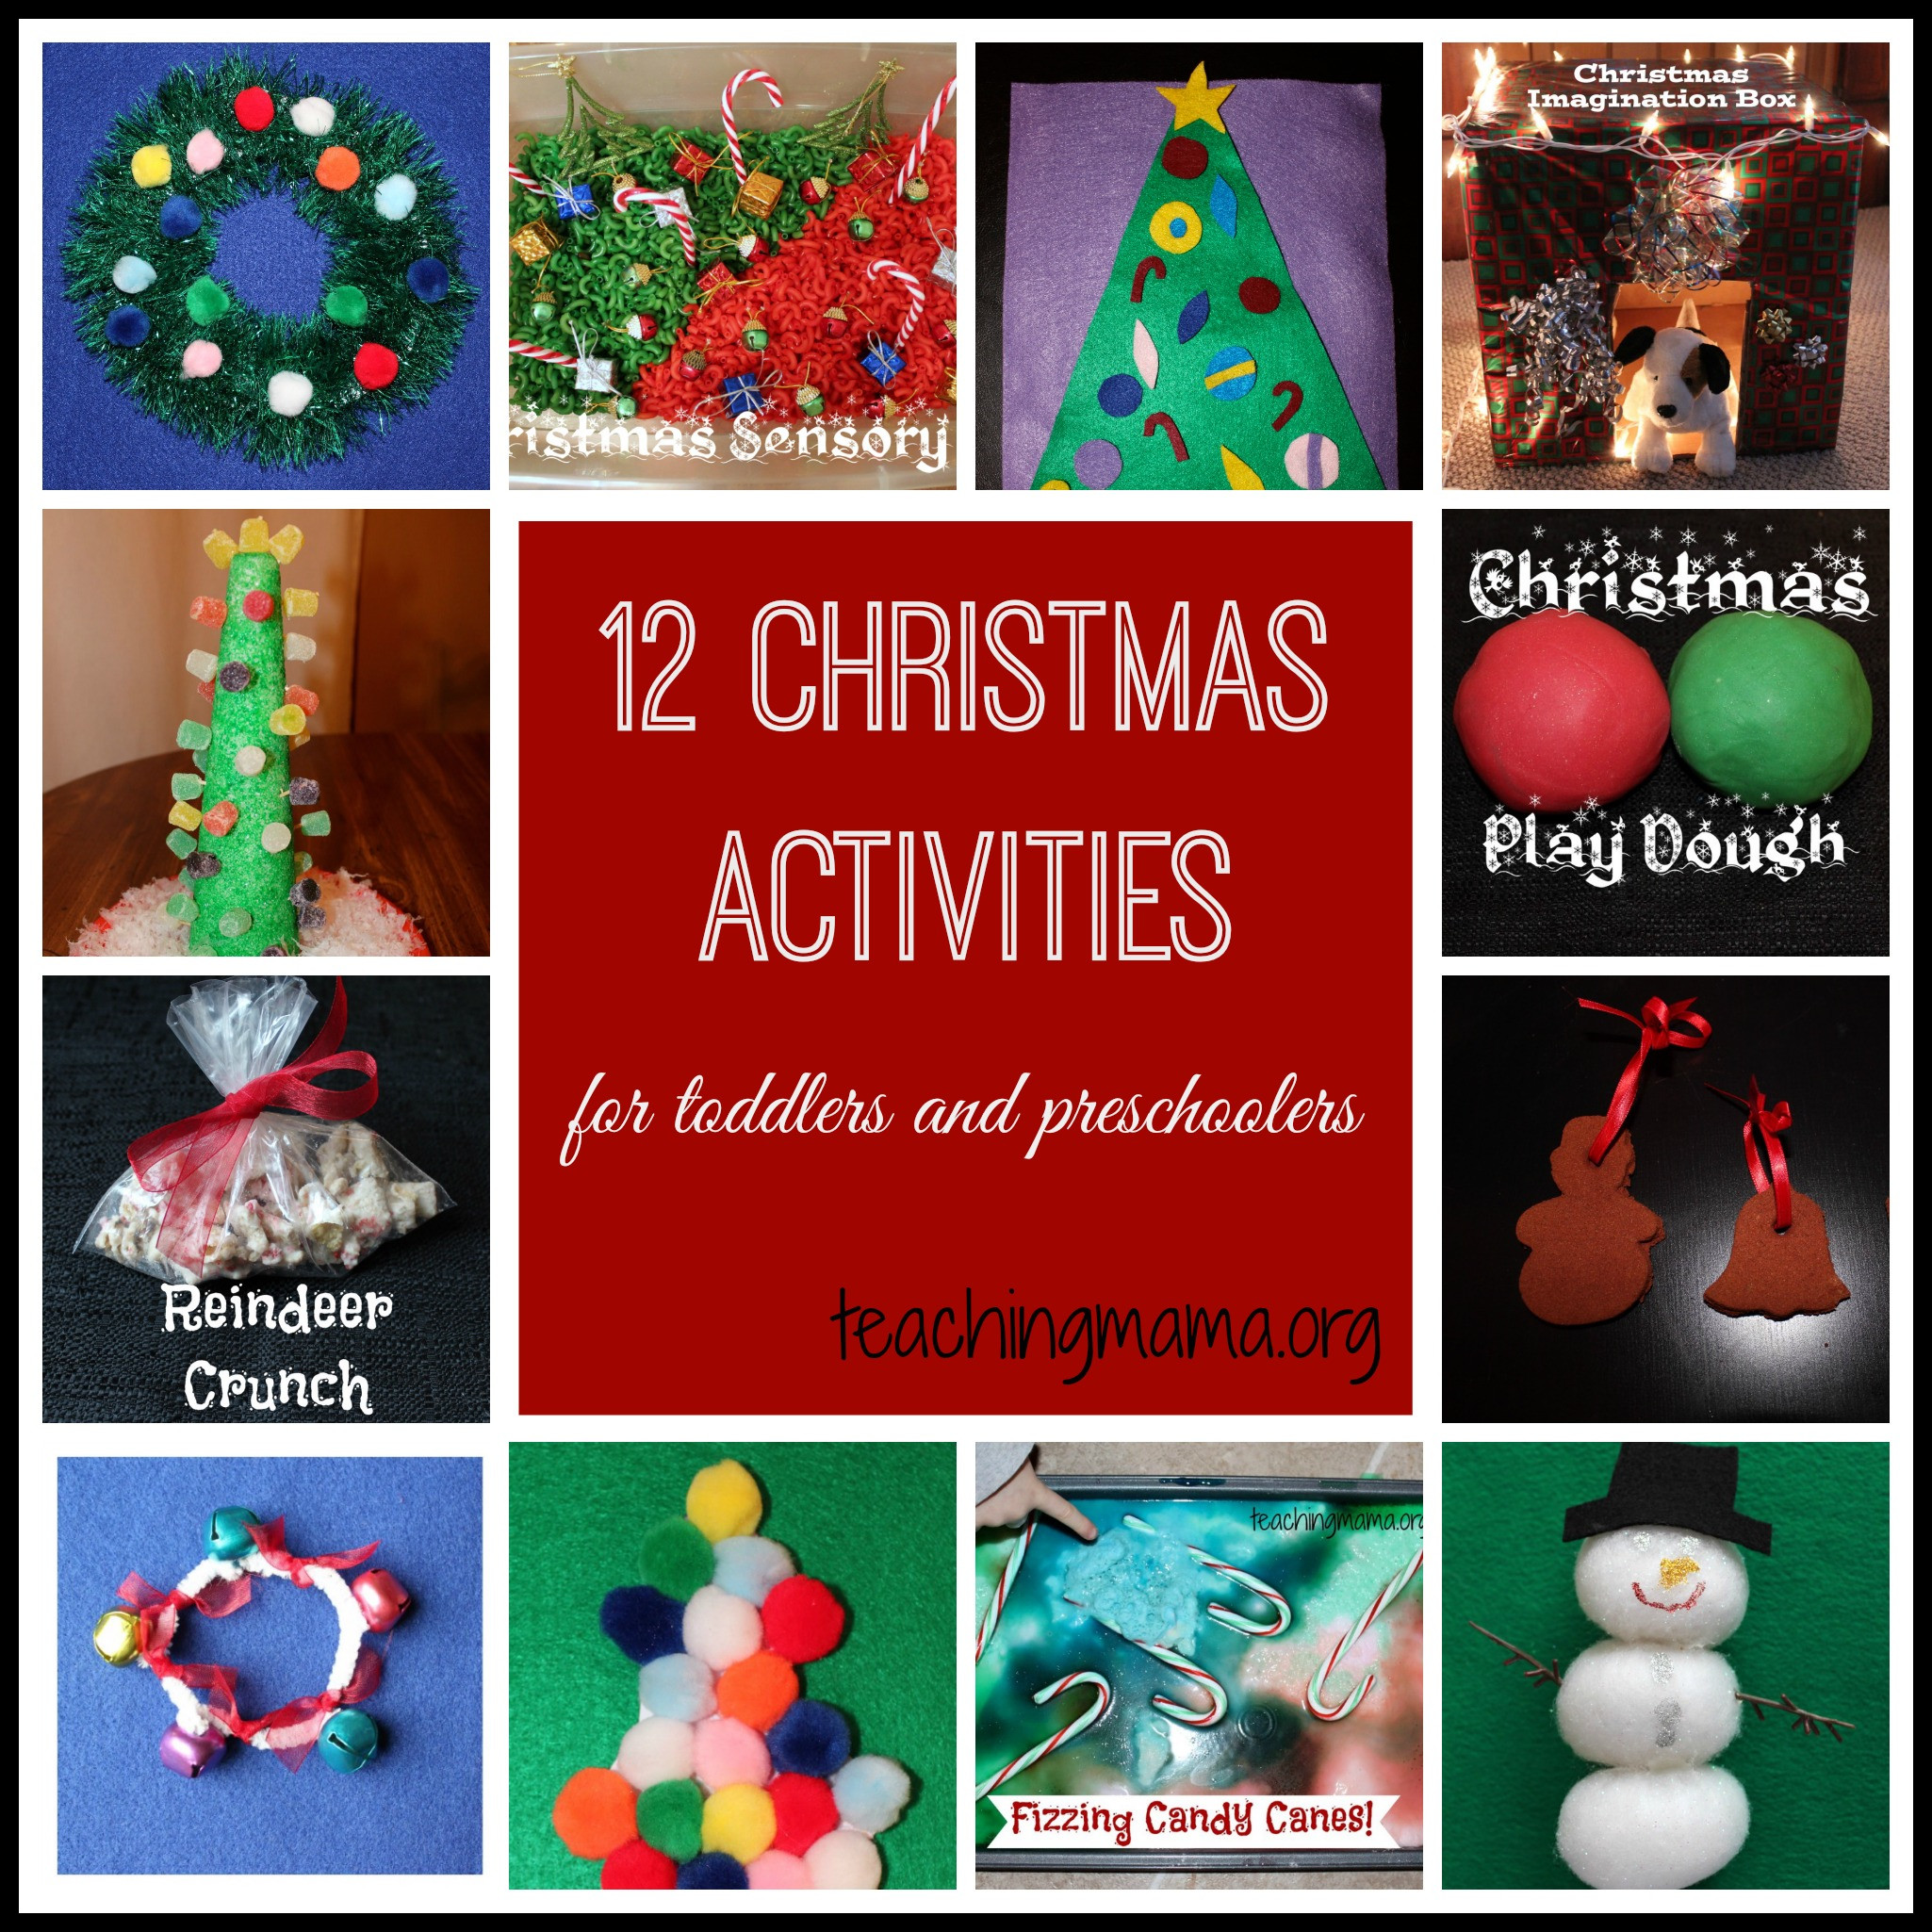 Best ideas about Christmas Projects For Preschoolers . Save or Pin Christmas Activities for Toddlers and Preschoolers Now.